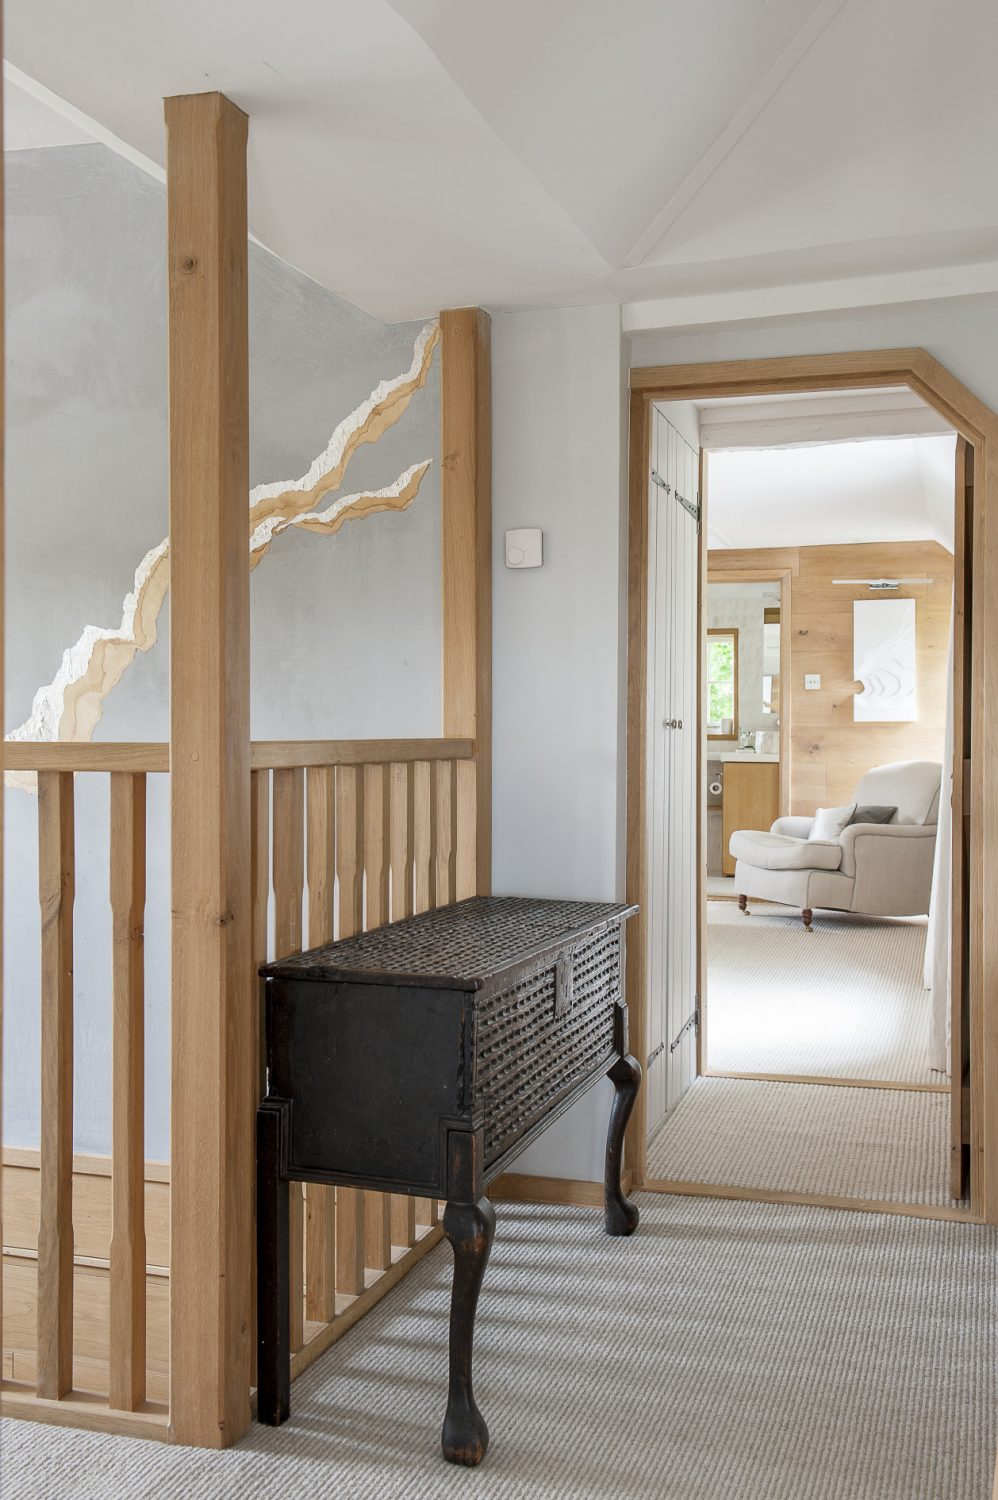 A view through to the master bedroom and en suite bathroom